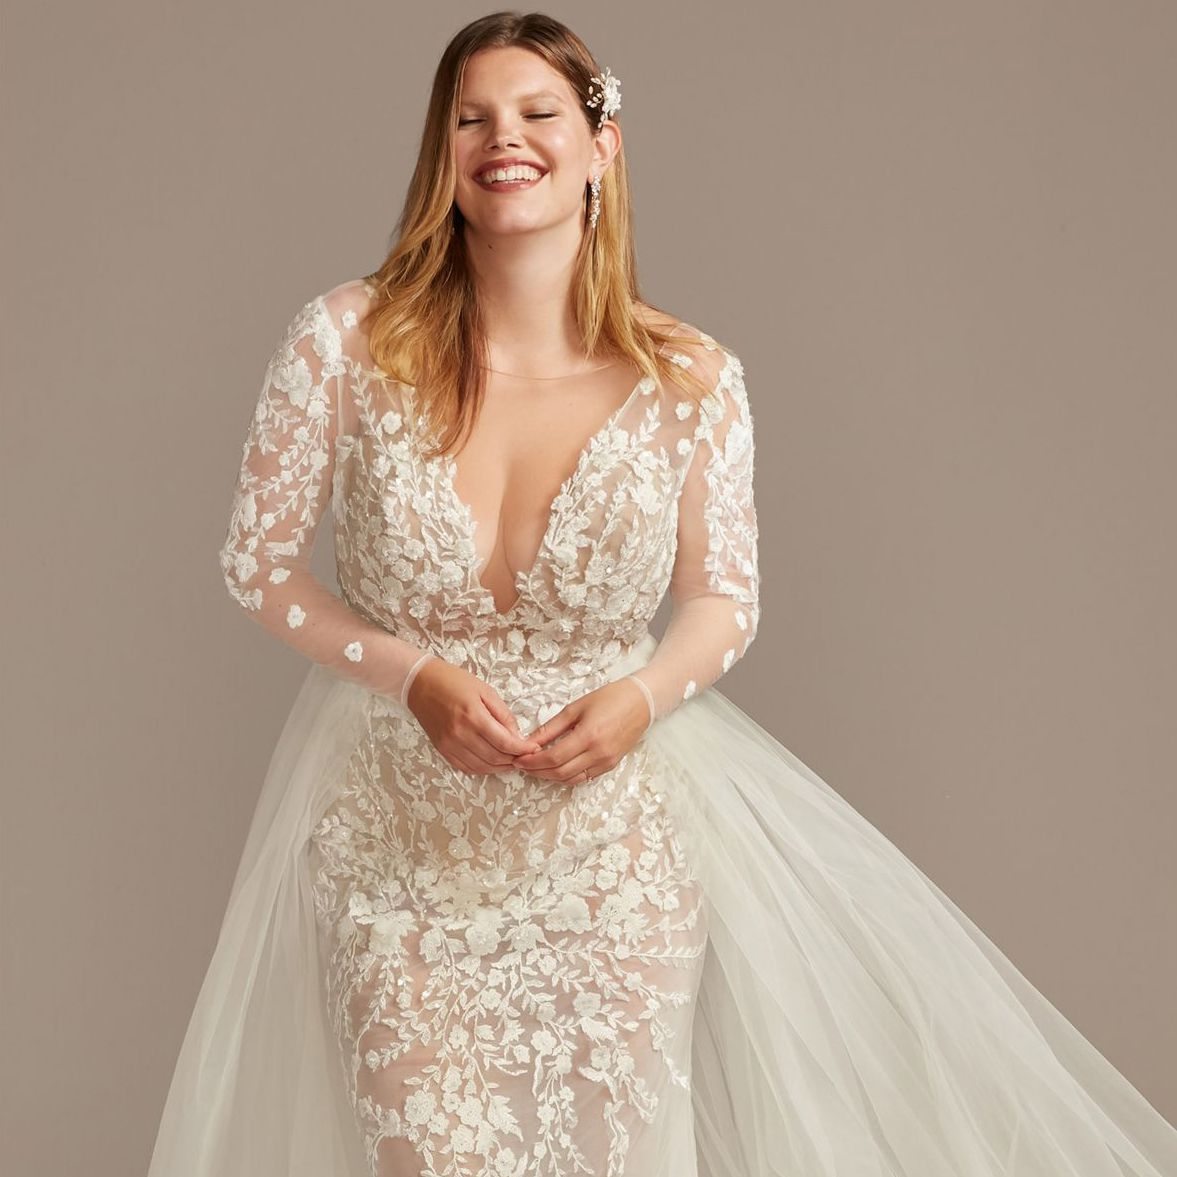 22 Plus Size Wedding Dresses To Flatter And Flaunt Your Curves In 2020 Full Figure Wedding Dress Wedding Dresses Uk Wedding Dresses Plus Size